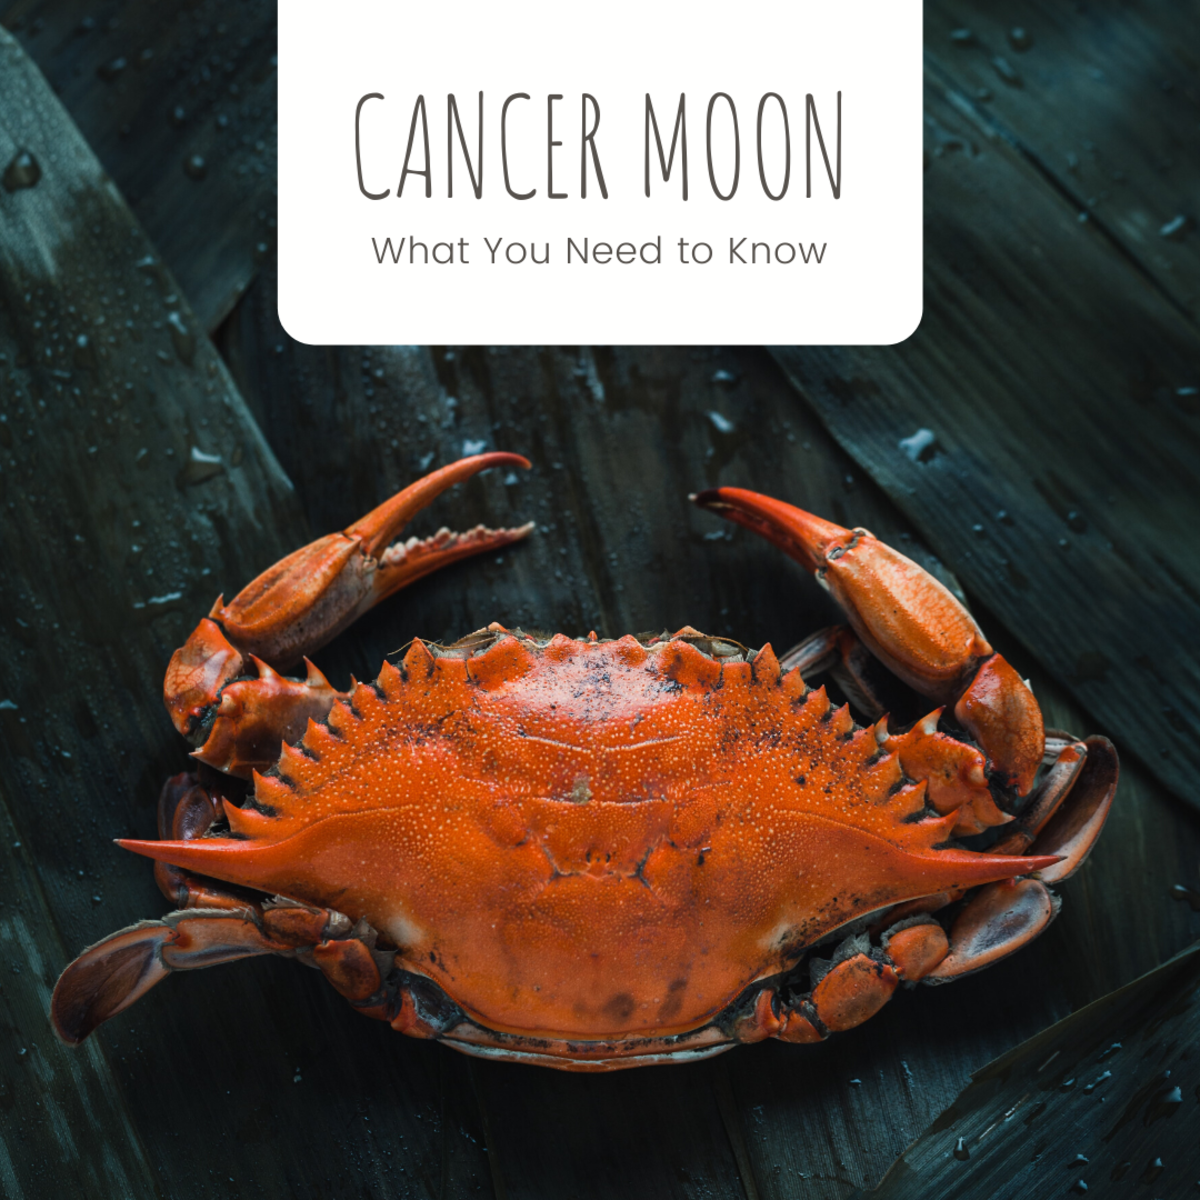 Cancer Moon